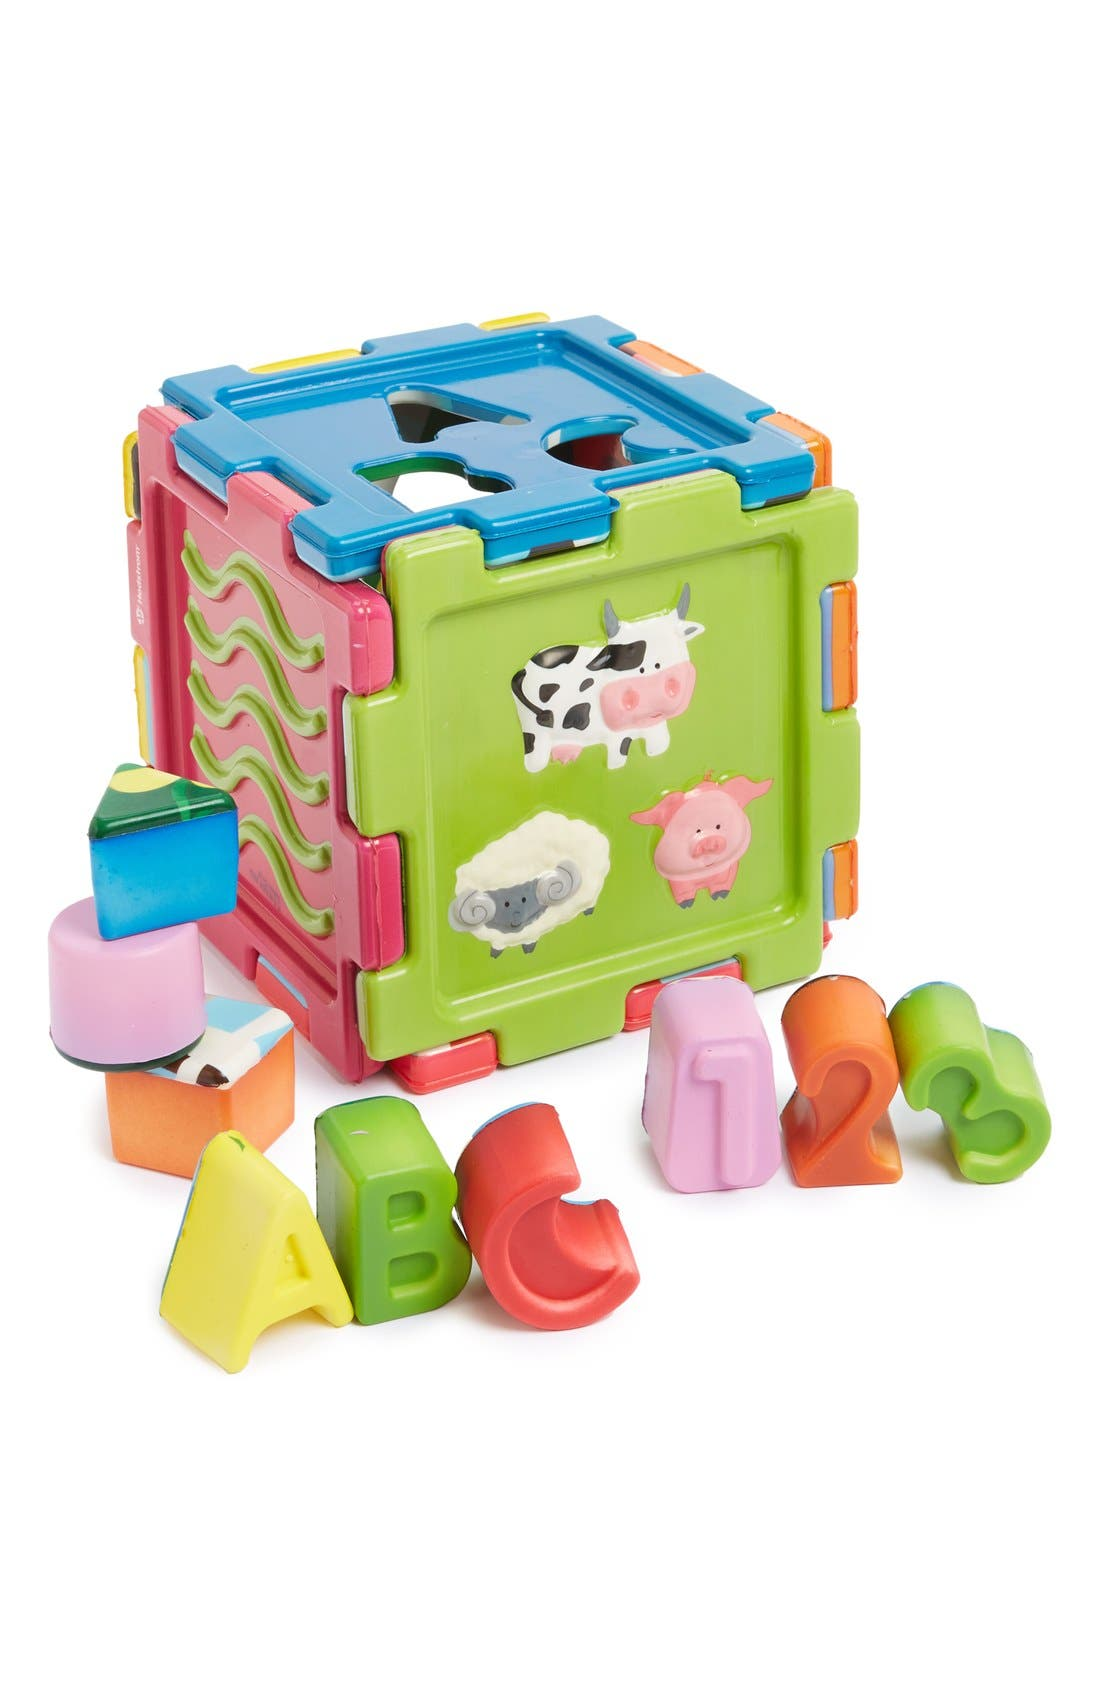 'Sensory Cube' Toy Set,                             Main thumbnail 1, color,                             Blue